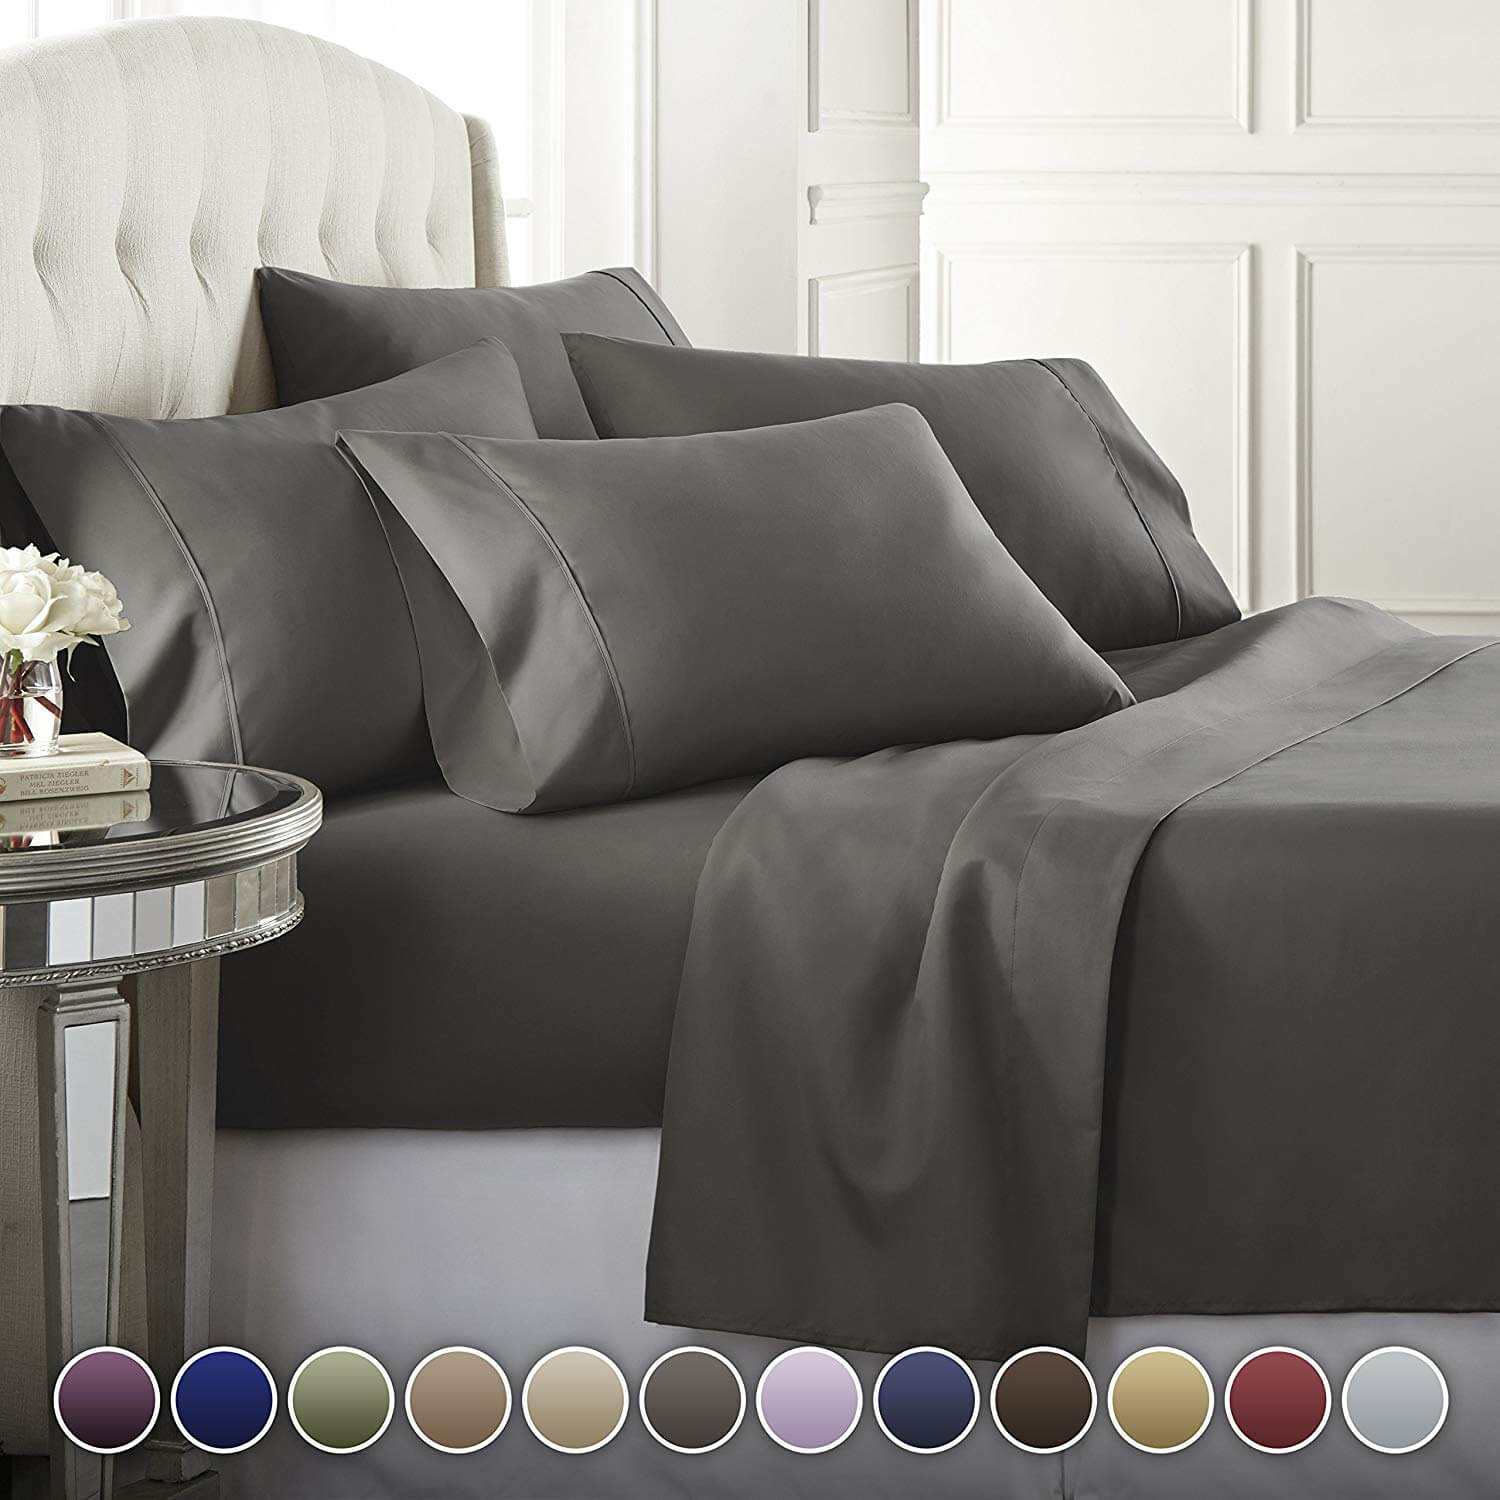 6. 6 Piece Hotel Luxury Soft 1800 Series Premium Bed Sheets Set